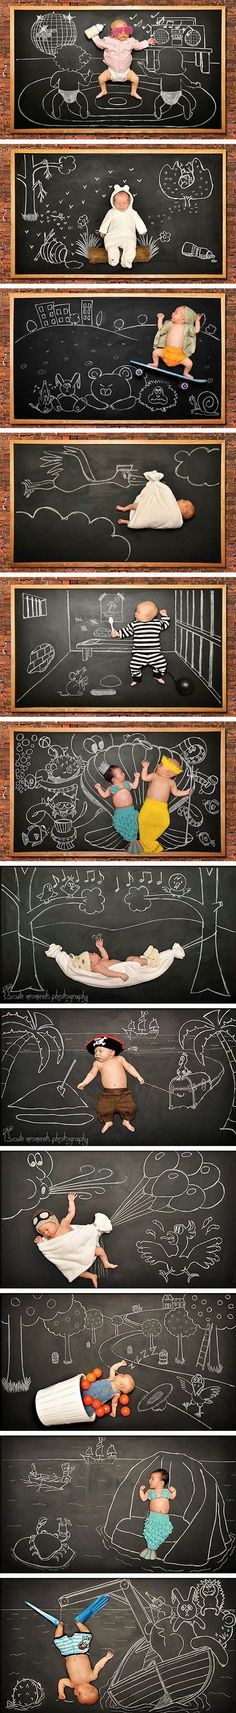 Chalkboard baby photos - I love will I have time to do #children toy| http://babyandkidstoysandproducts.mai.lemoncoin.org